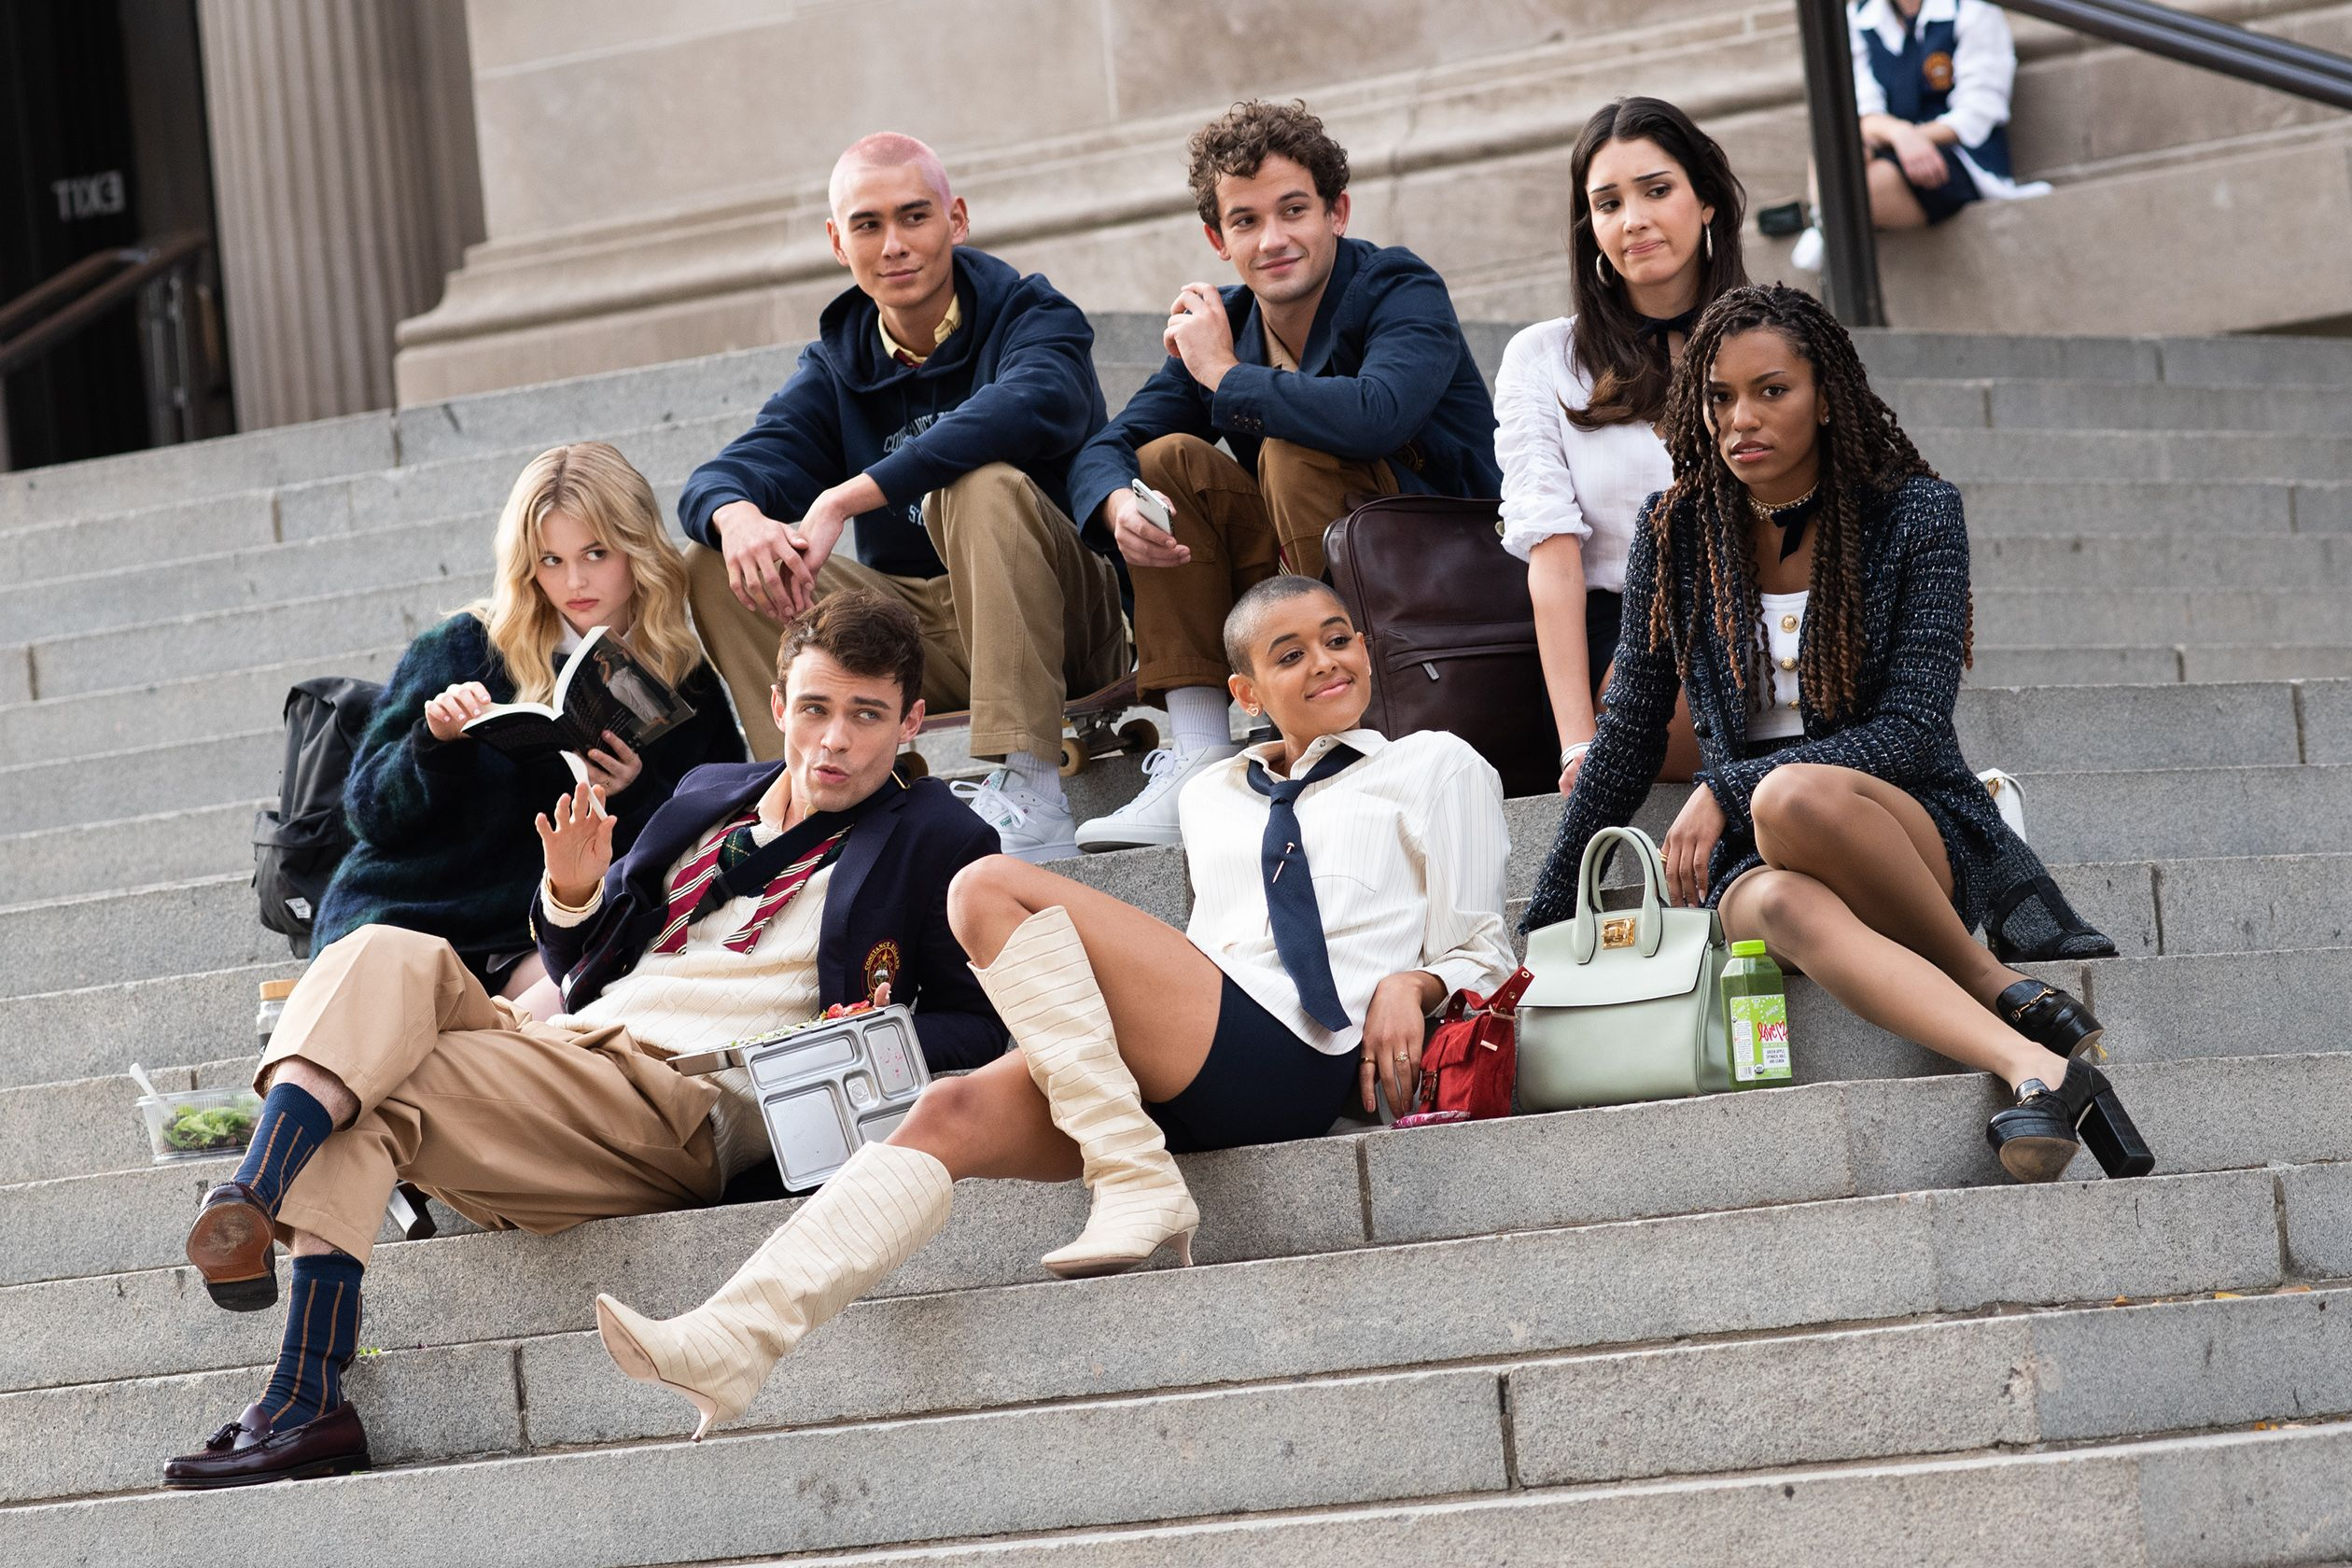 Here Are the Best 'Gossip Girl' Reboot Looks From the Set